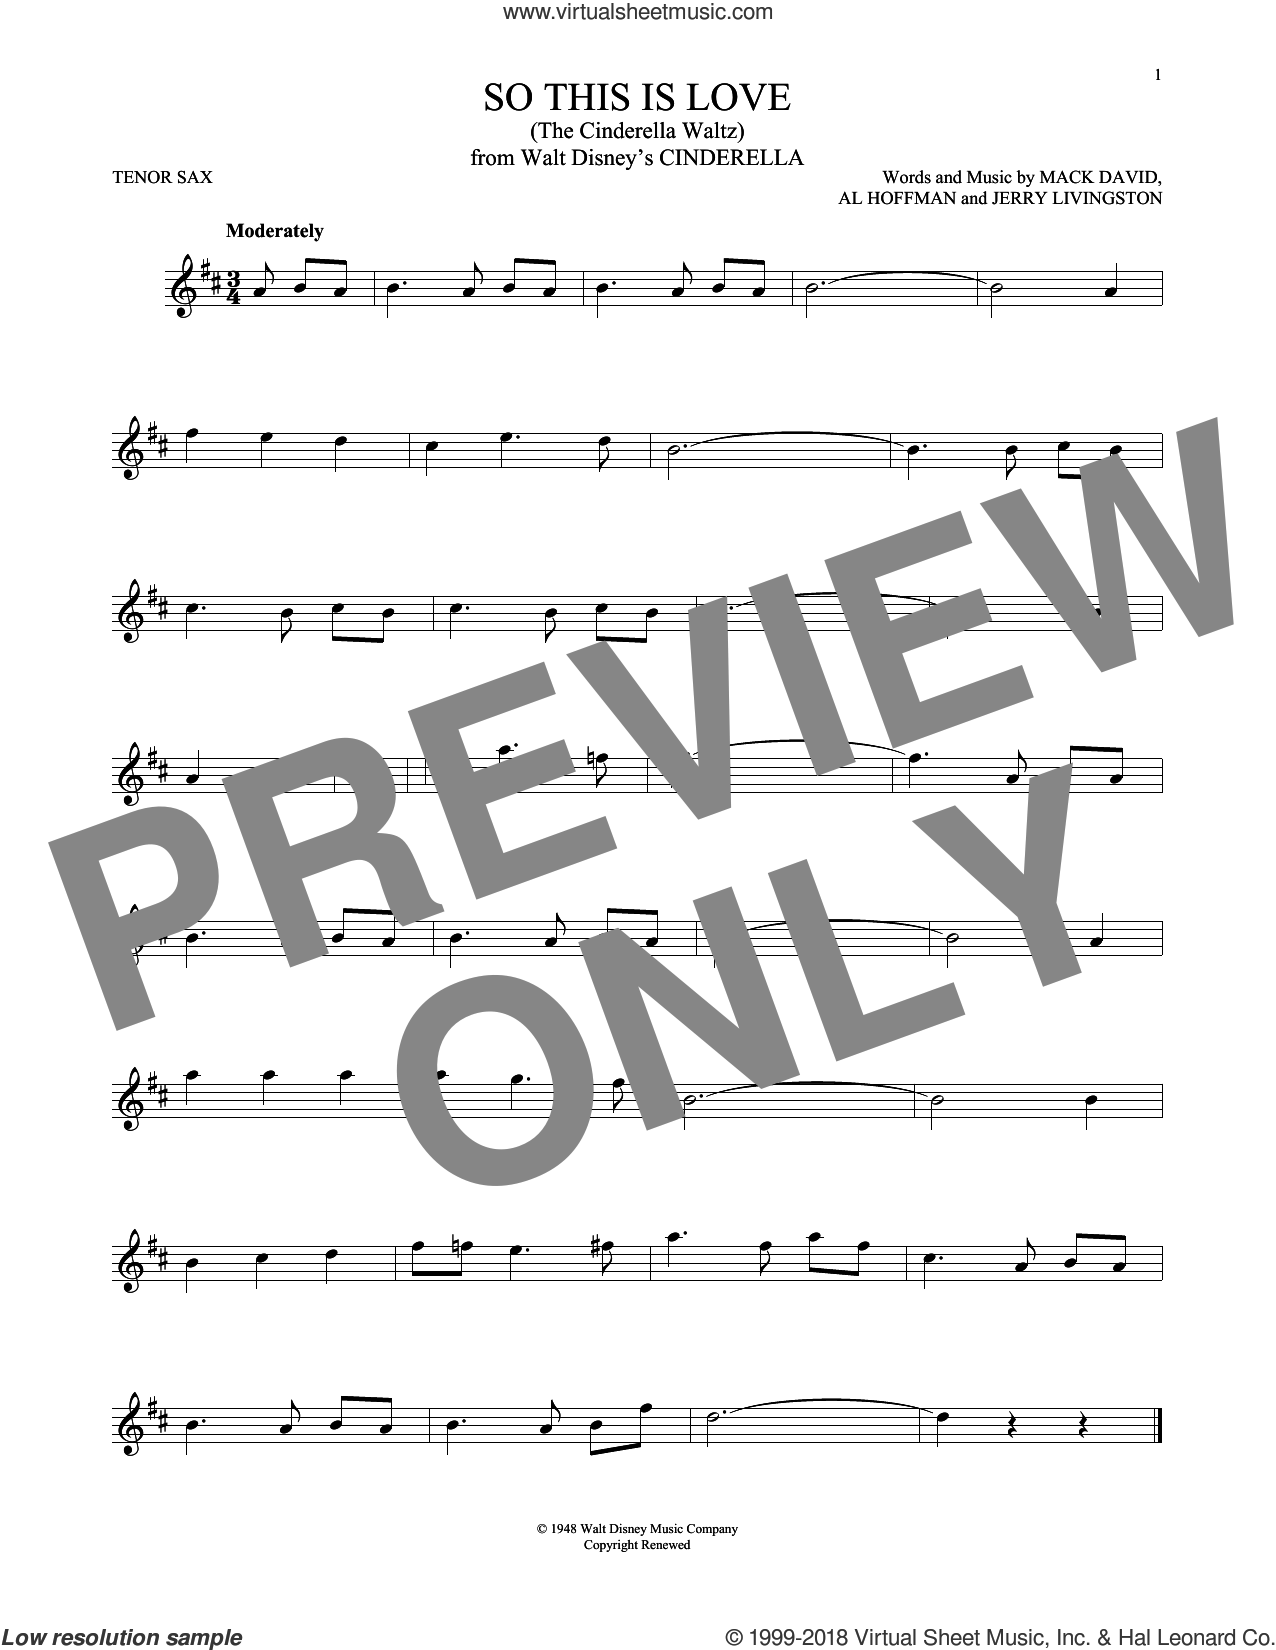 So This Is Love sheet music for tenor saxophone solo by Al Hoffman, James Ingram, Jerry Livingston, Mack David and Mack David, Al Hoffman and Jerry Livingston, intermediate skill level